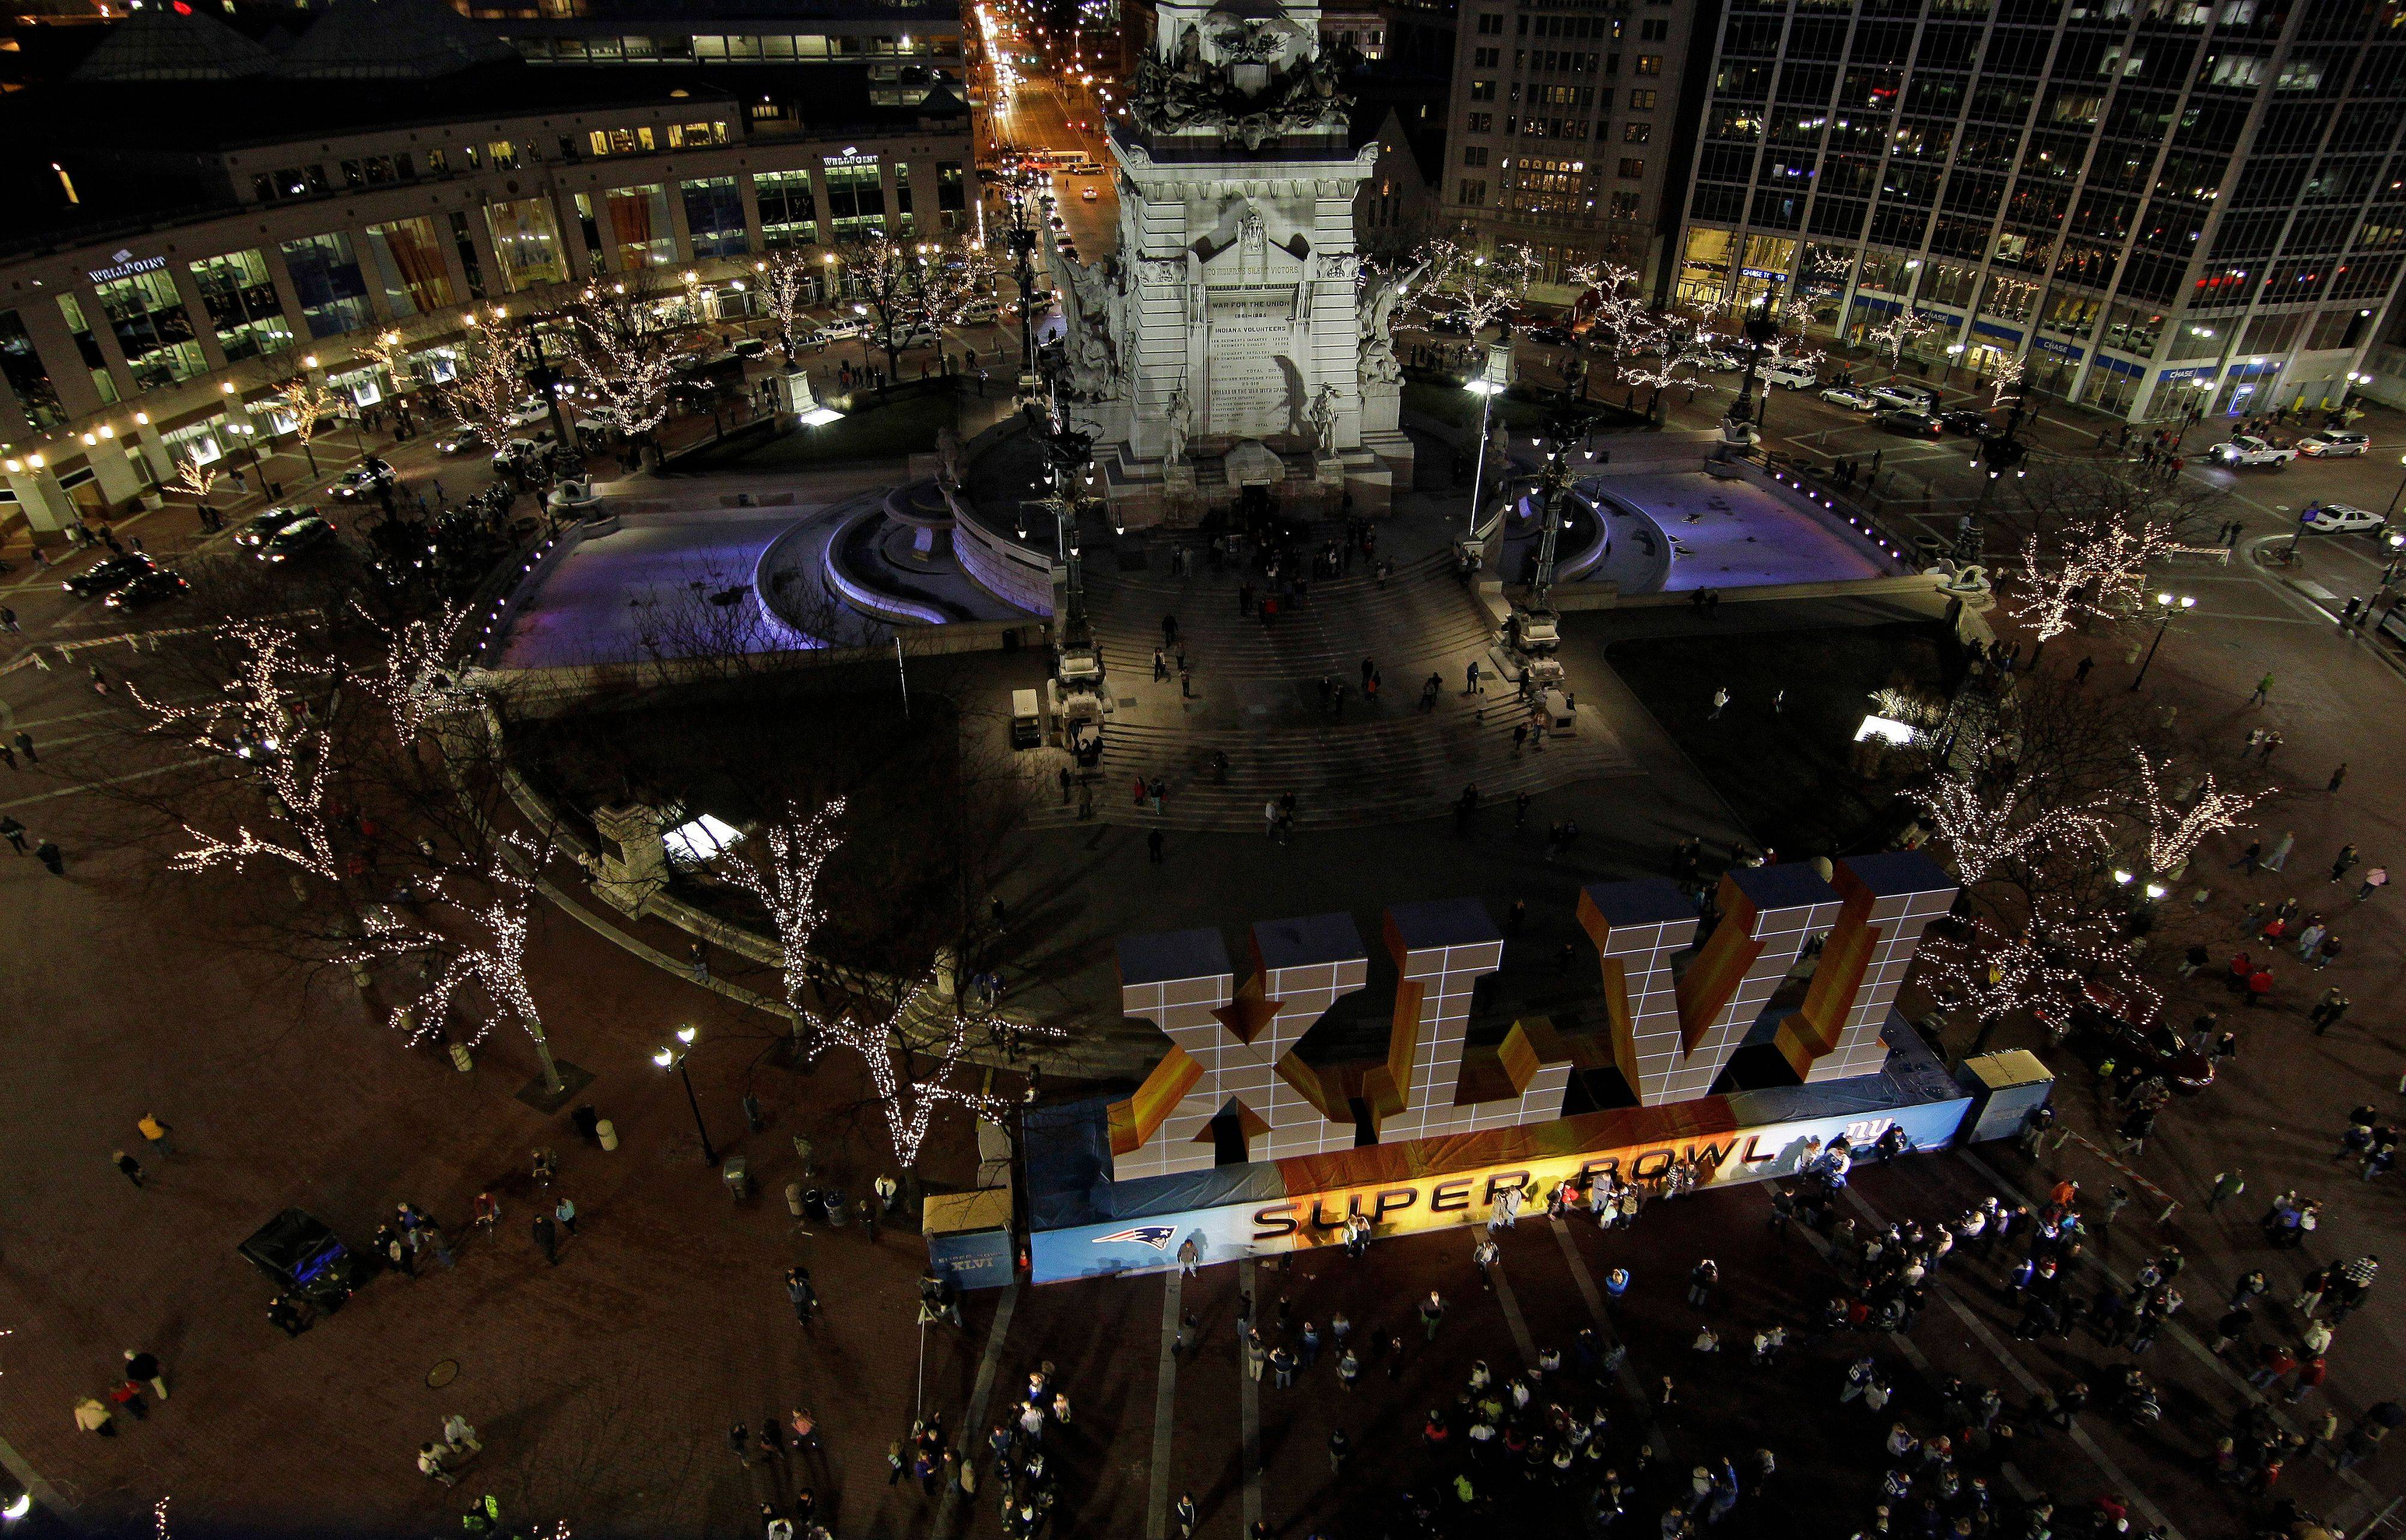 Fans have their photos taken in front of NFL football's Super Bowl XLVI sign on Monument Circle in Indianapolis. Indianapolis will become a celebrity hub over the next few days leading up to Sunday's Super Bowl.